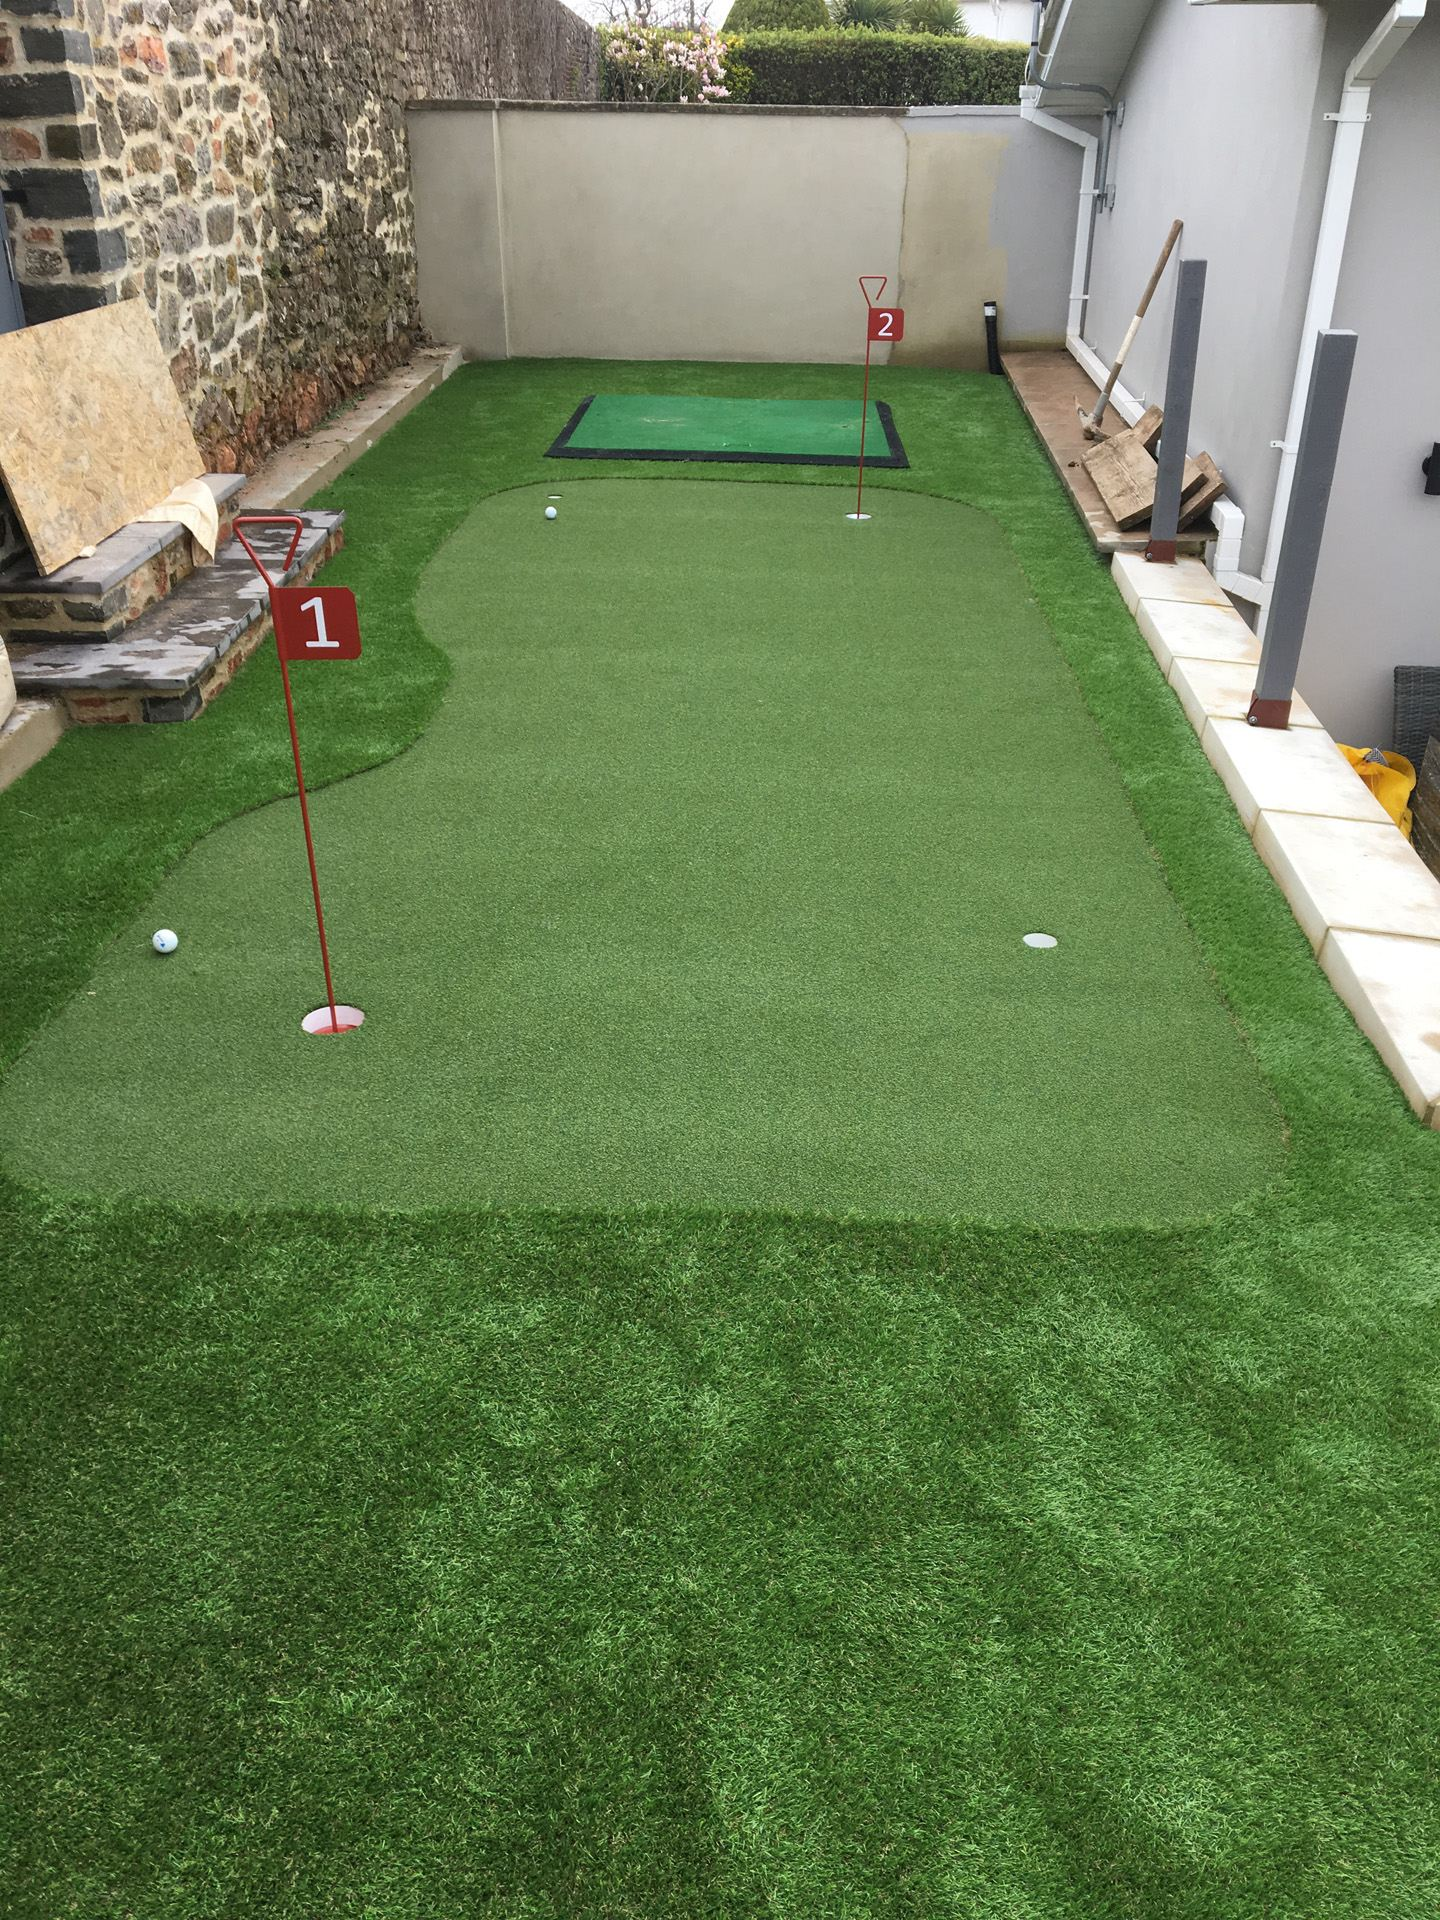 PPG - Residential Golf Greens